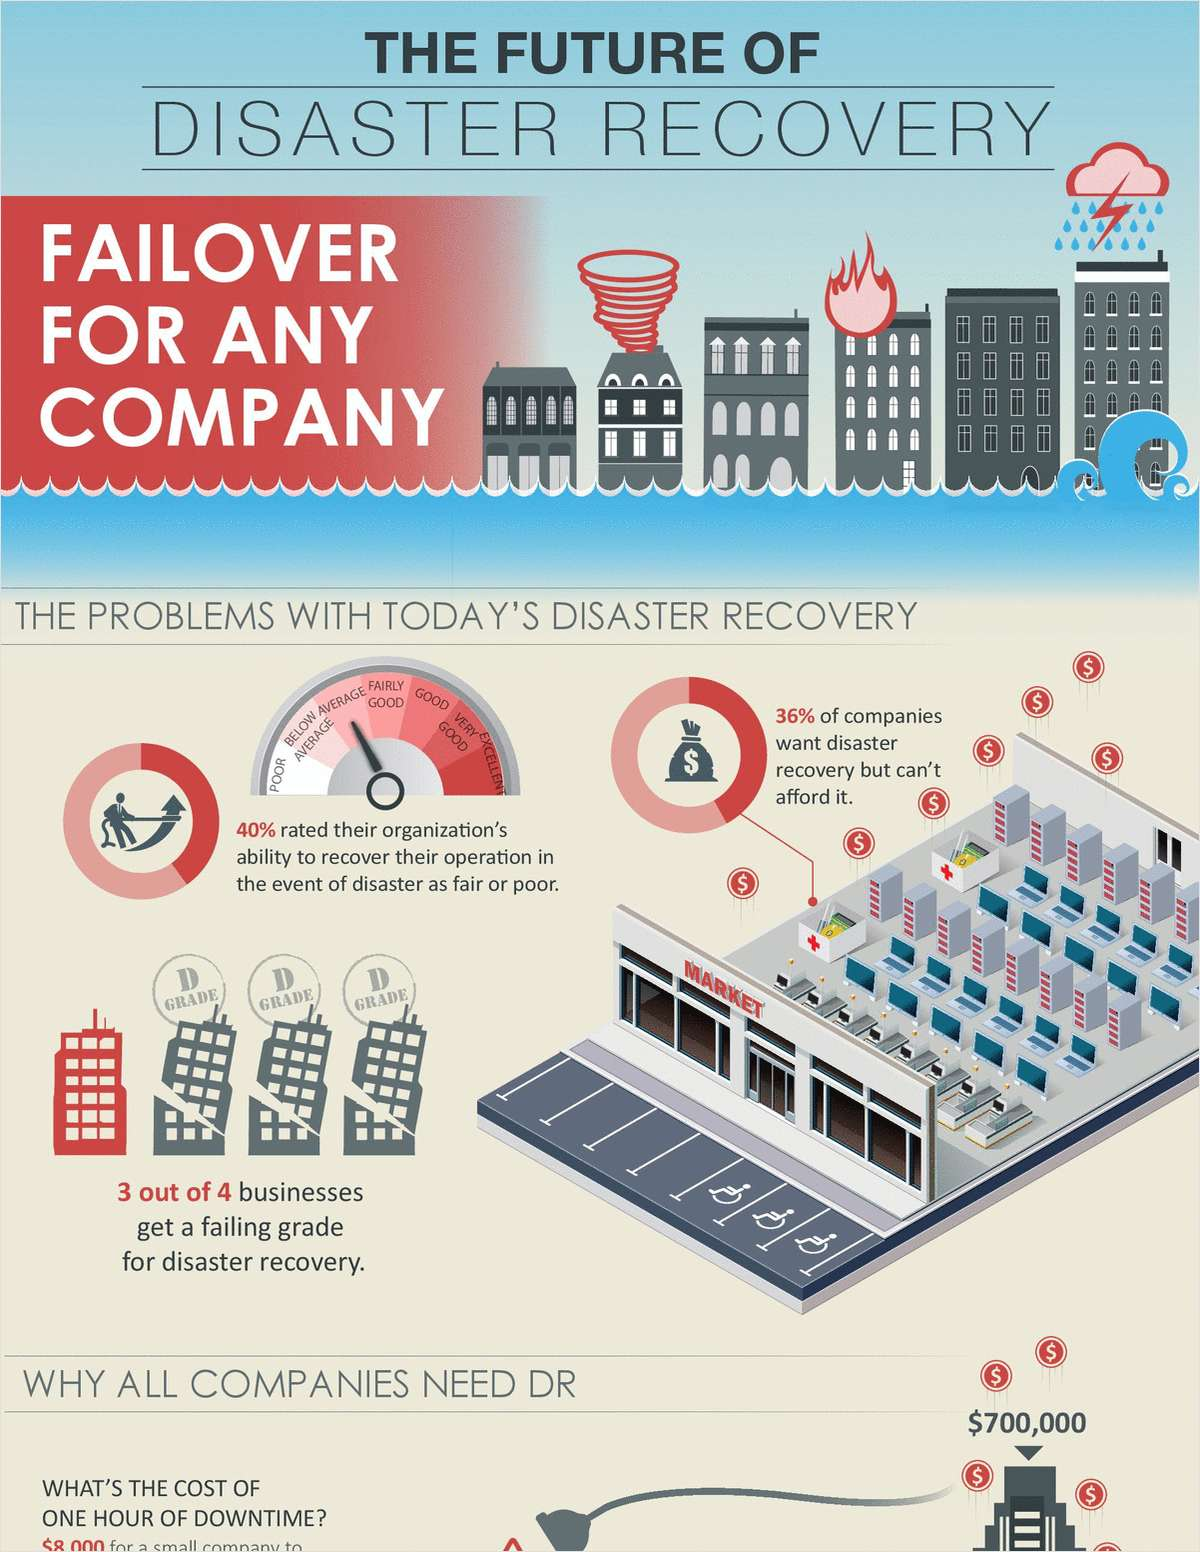 The Future of Disaster Recovery